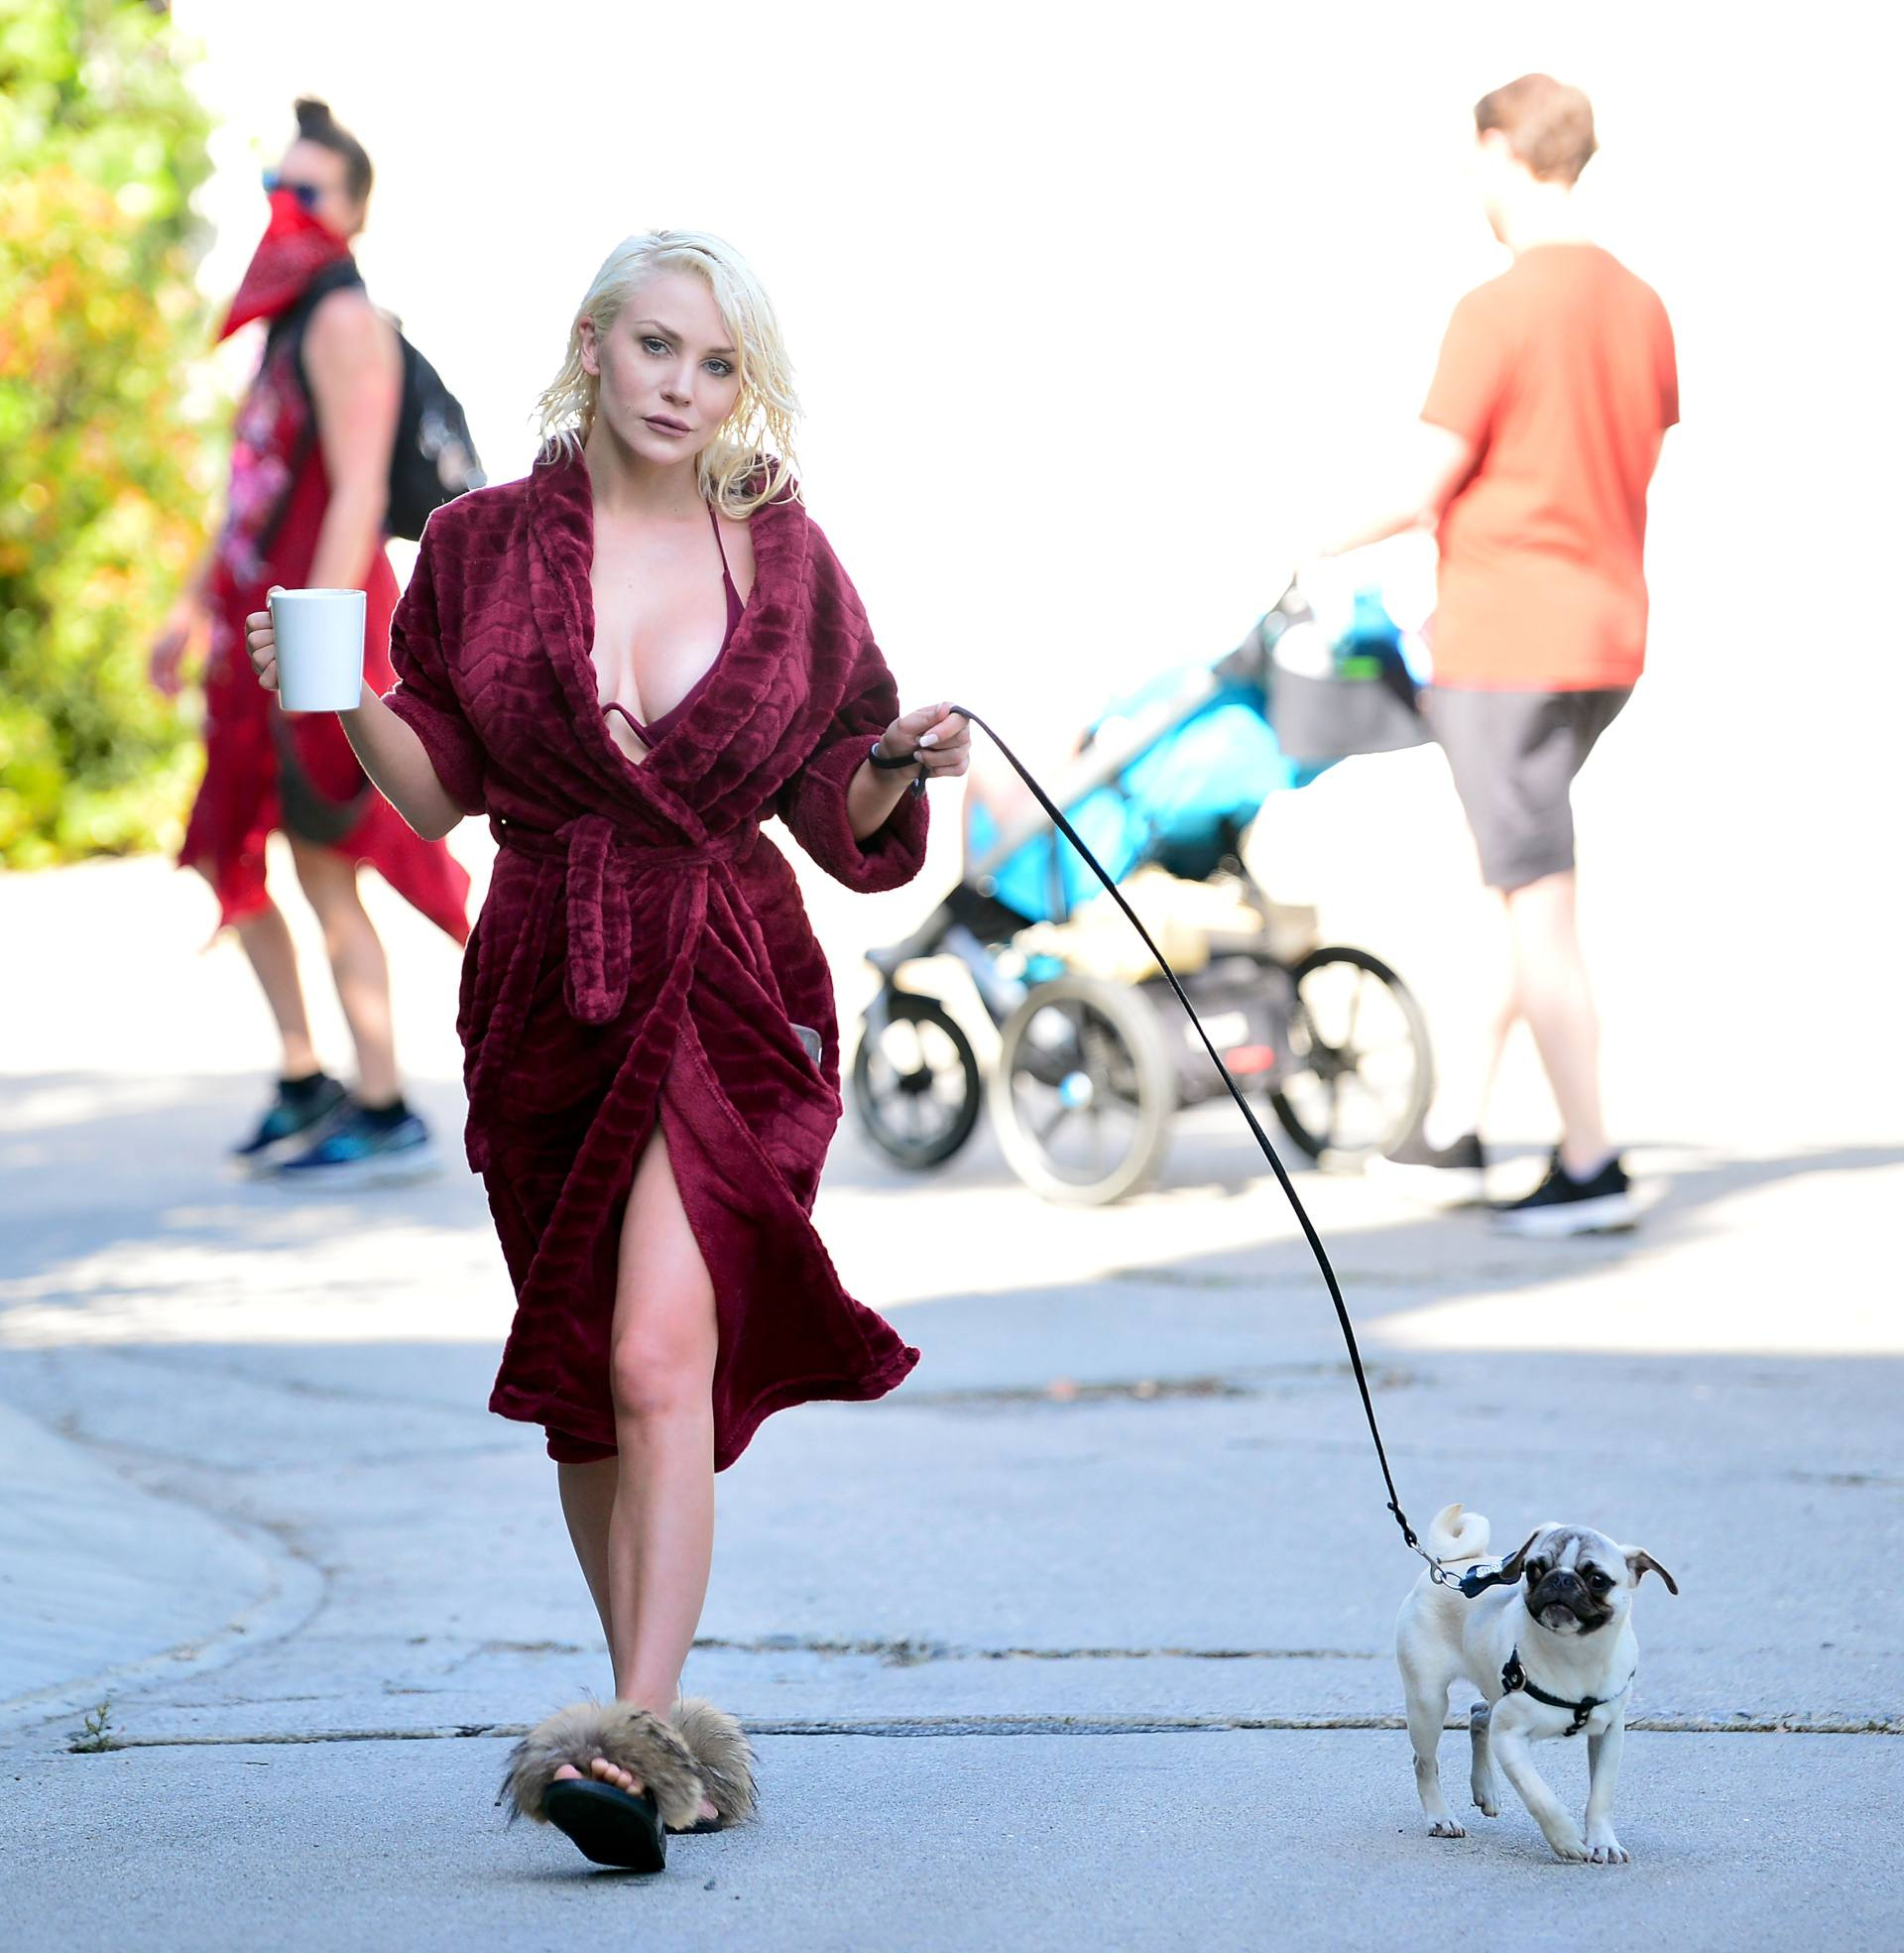 Courtney Stodden Sexy Boobs In Risque Robe Out In Los Angeles 0003